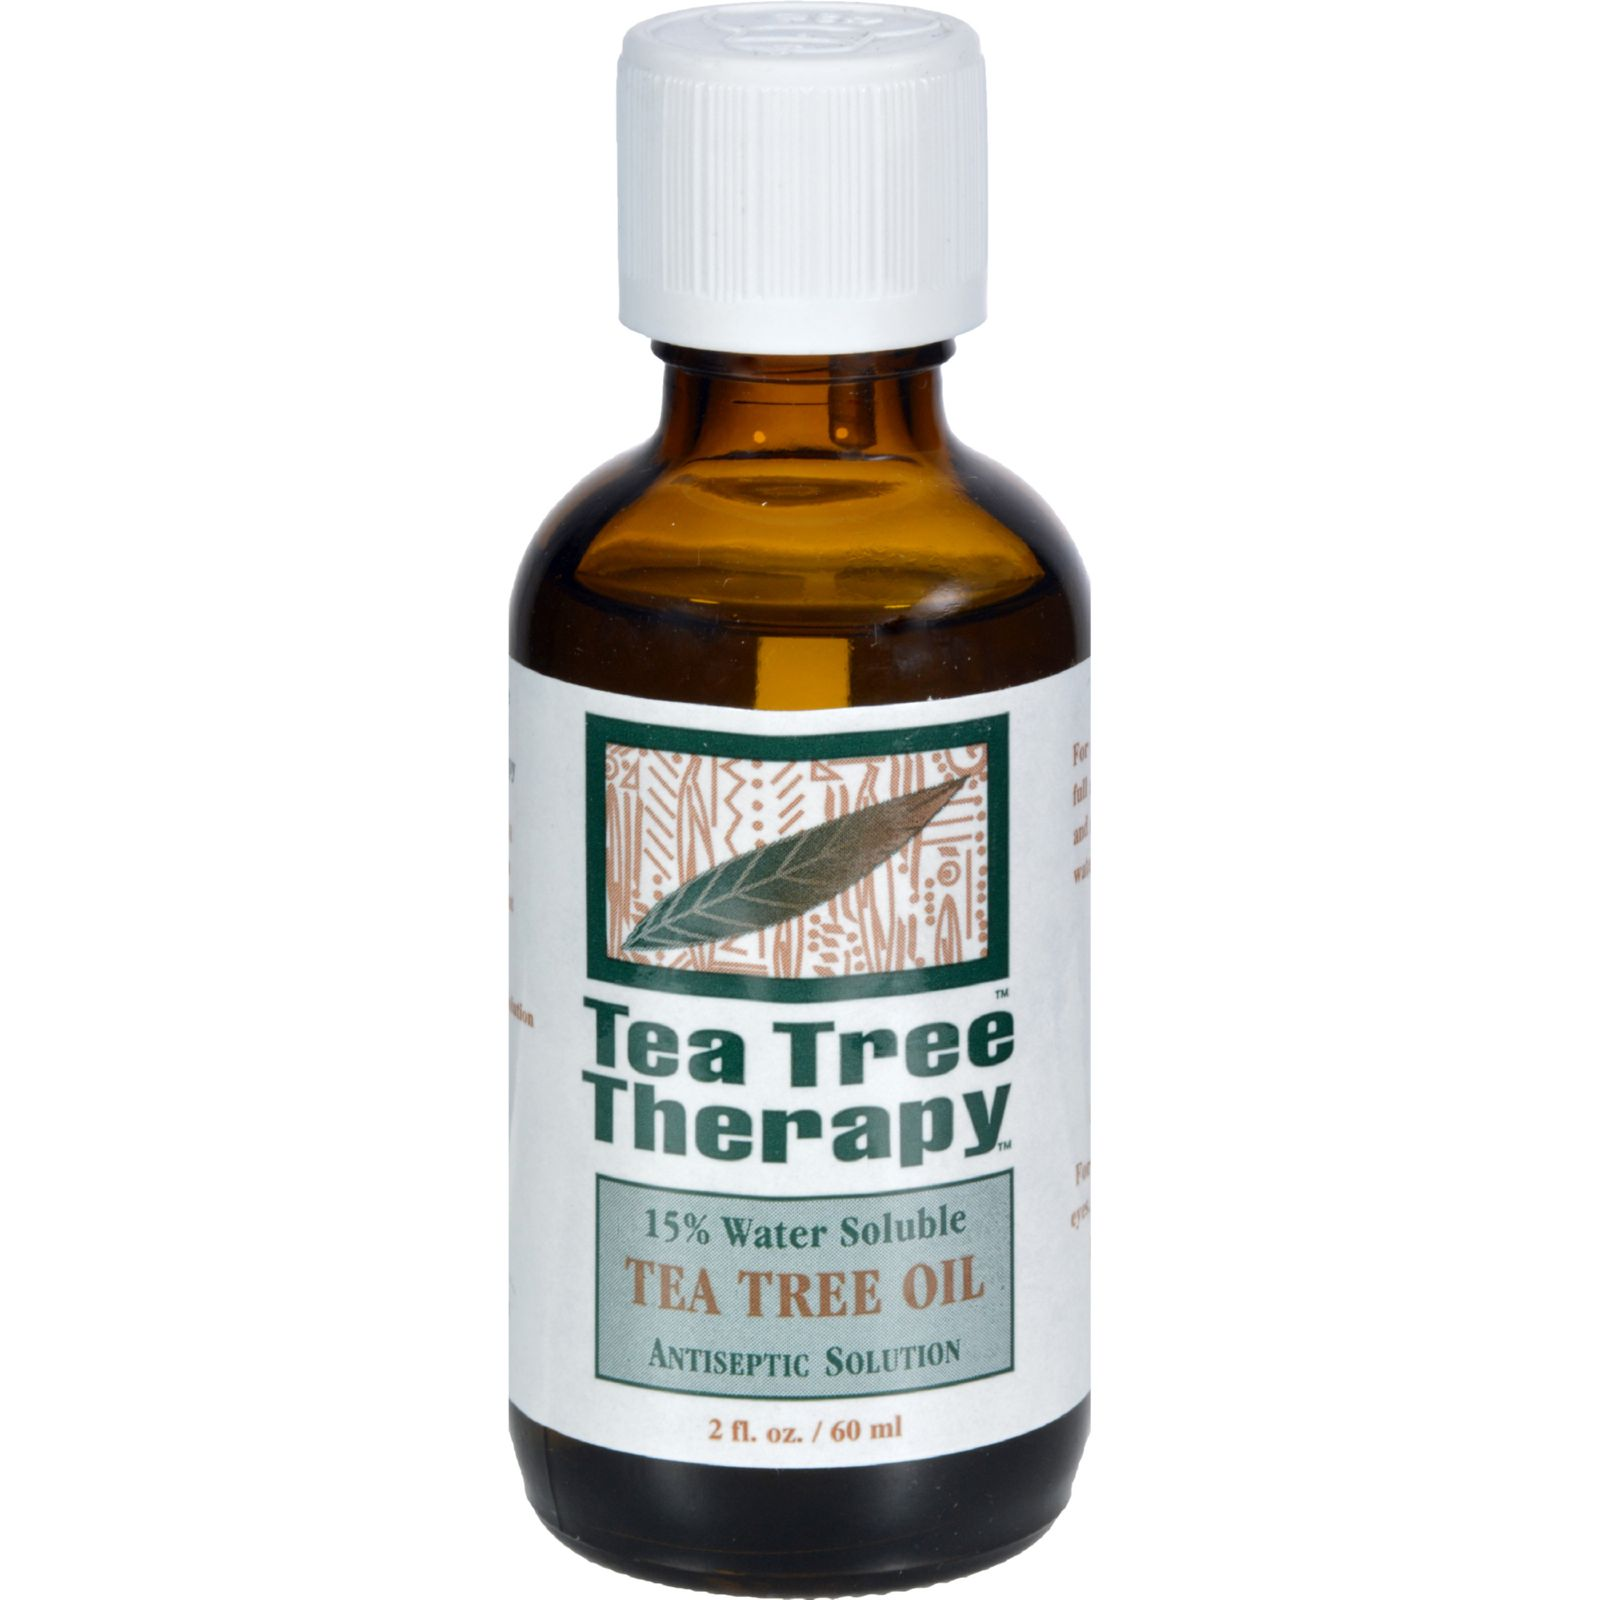 Tea Tree Therapy Tea Tree Therapy  Antiseptic Solution, 2 oz